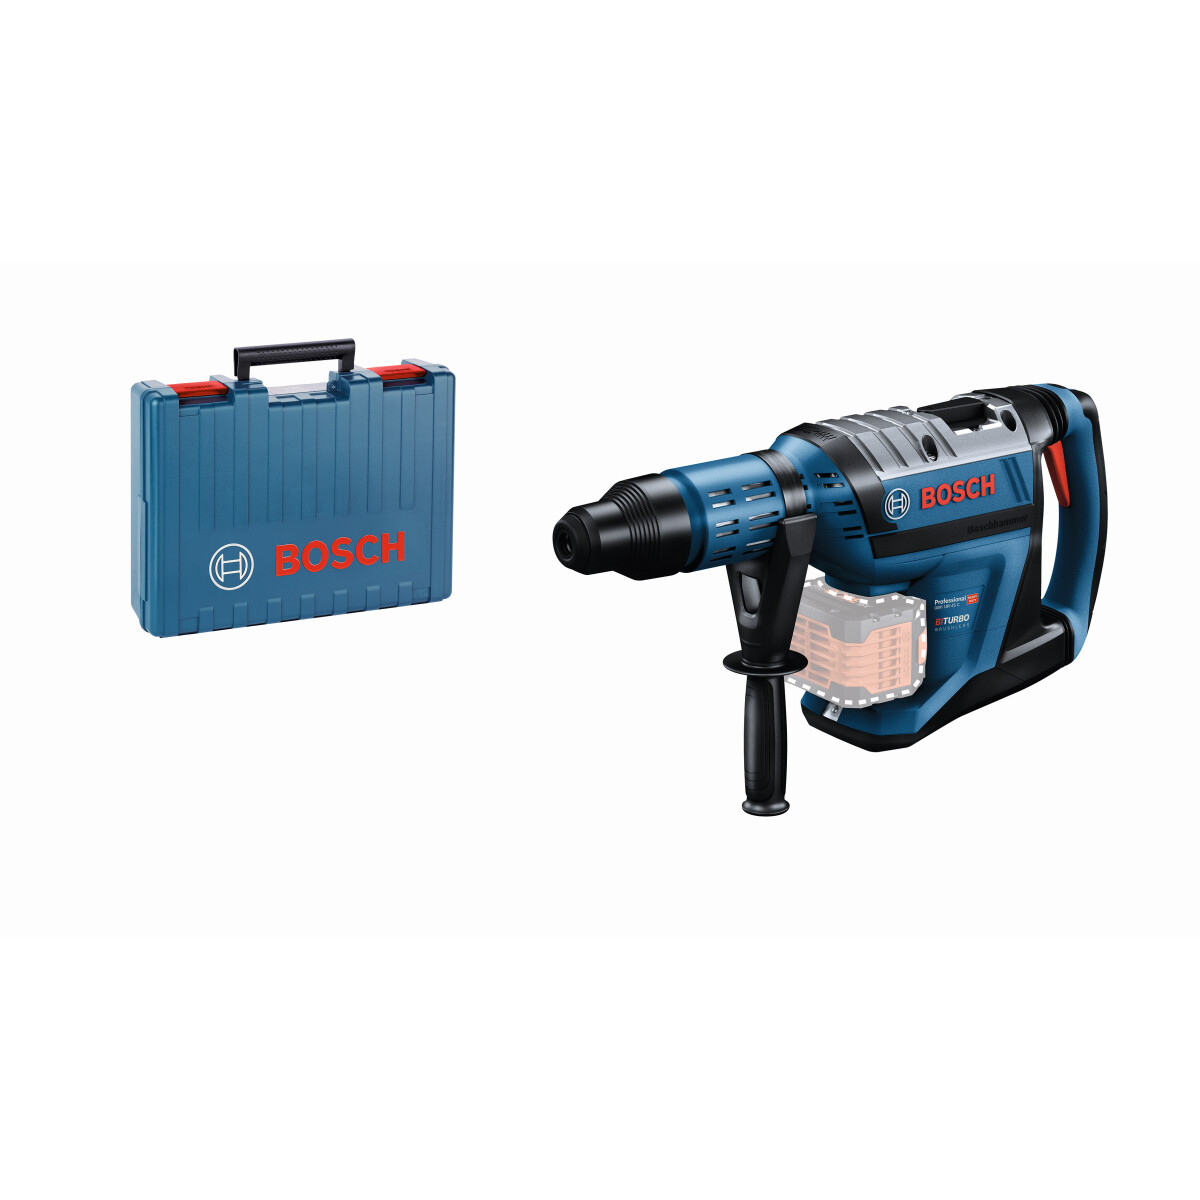 Bosch GBH 18V-45 C Body Only 18v BiTurbo Brushless SDS Max Hammer Drill Connection Ready in Carry Case